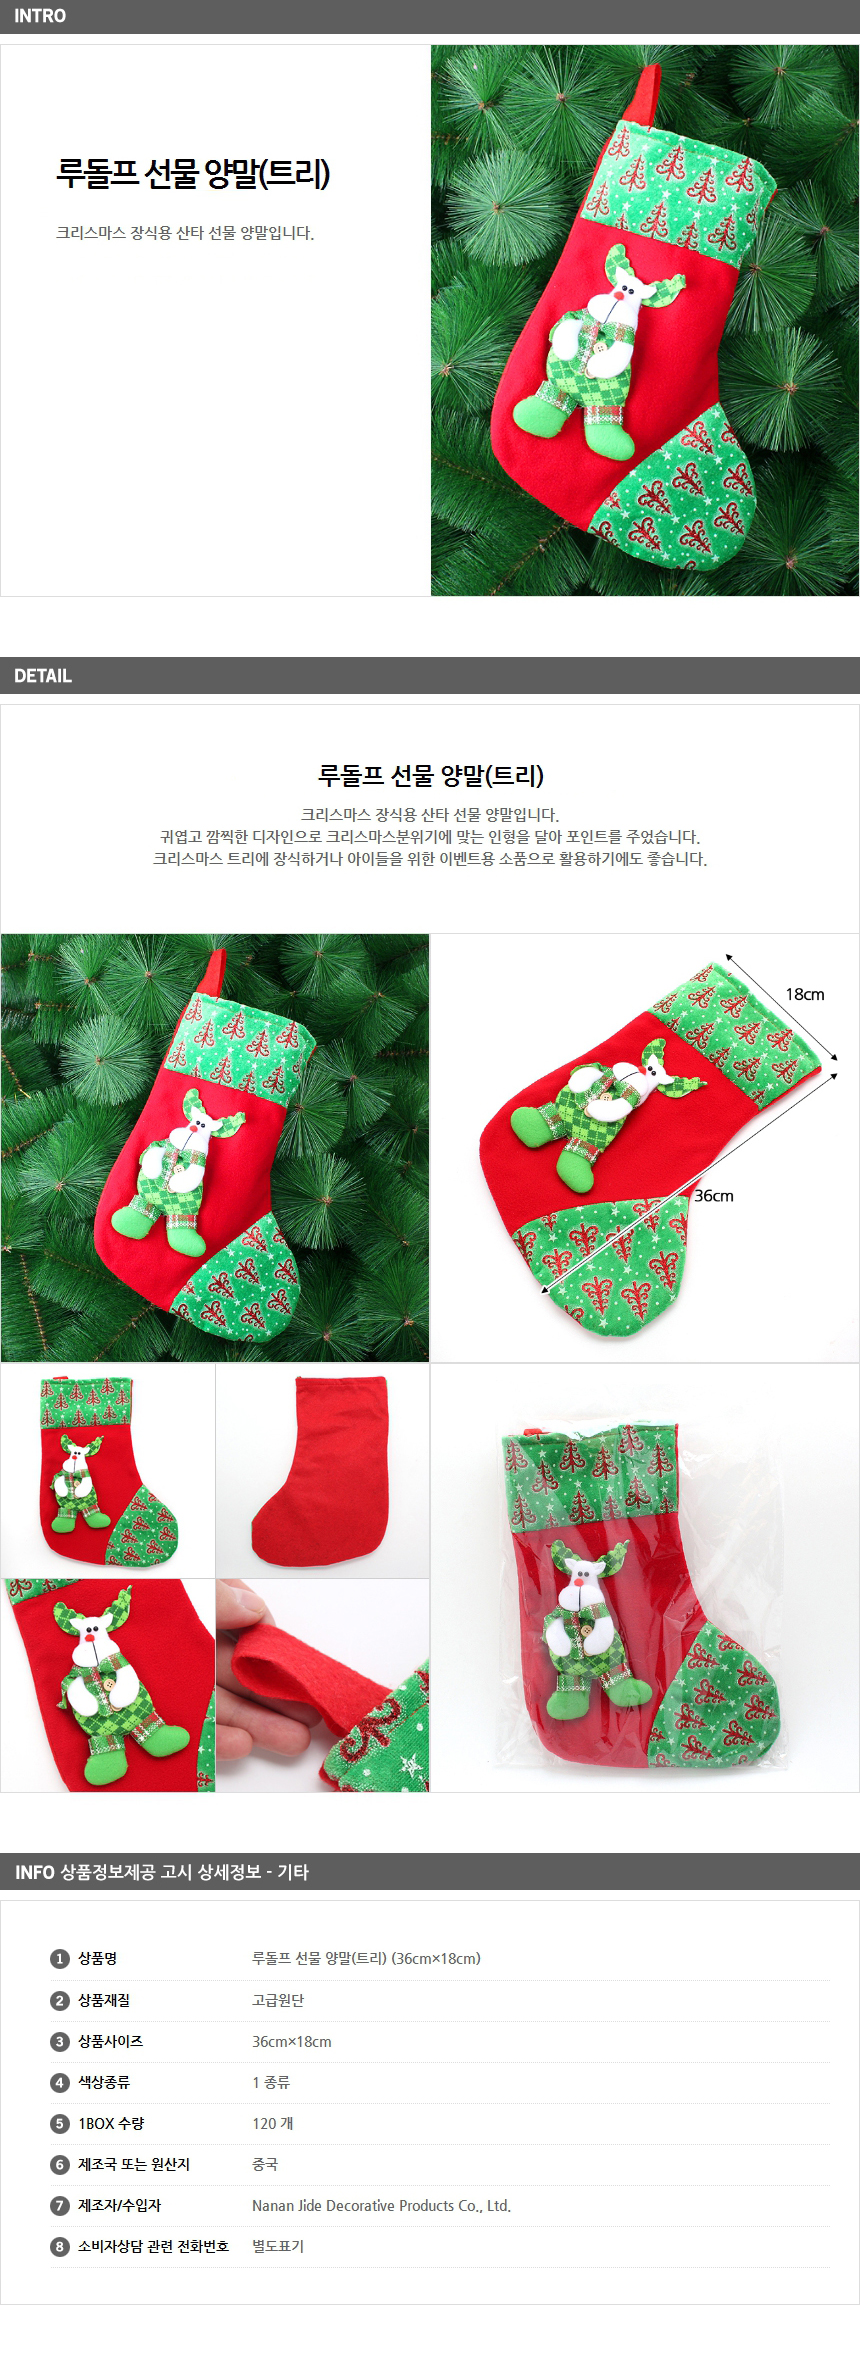 [ WINEQOK ] Christmas Goods / Rudolph gift socks tree ×